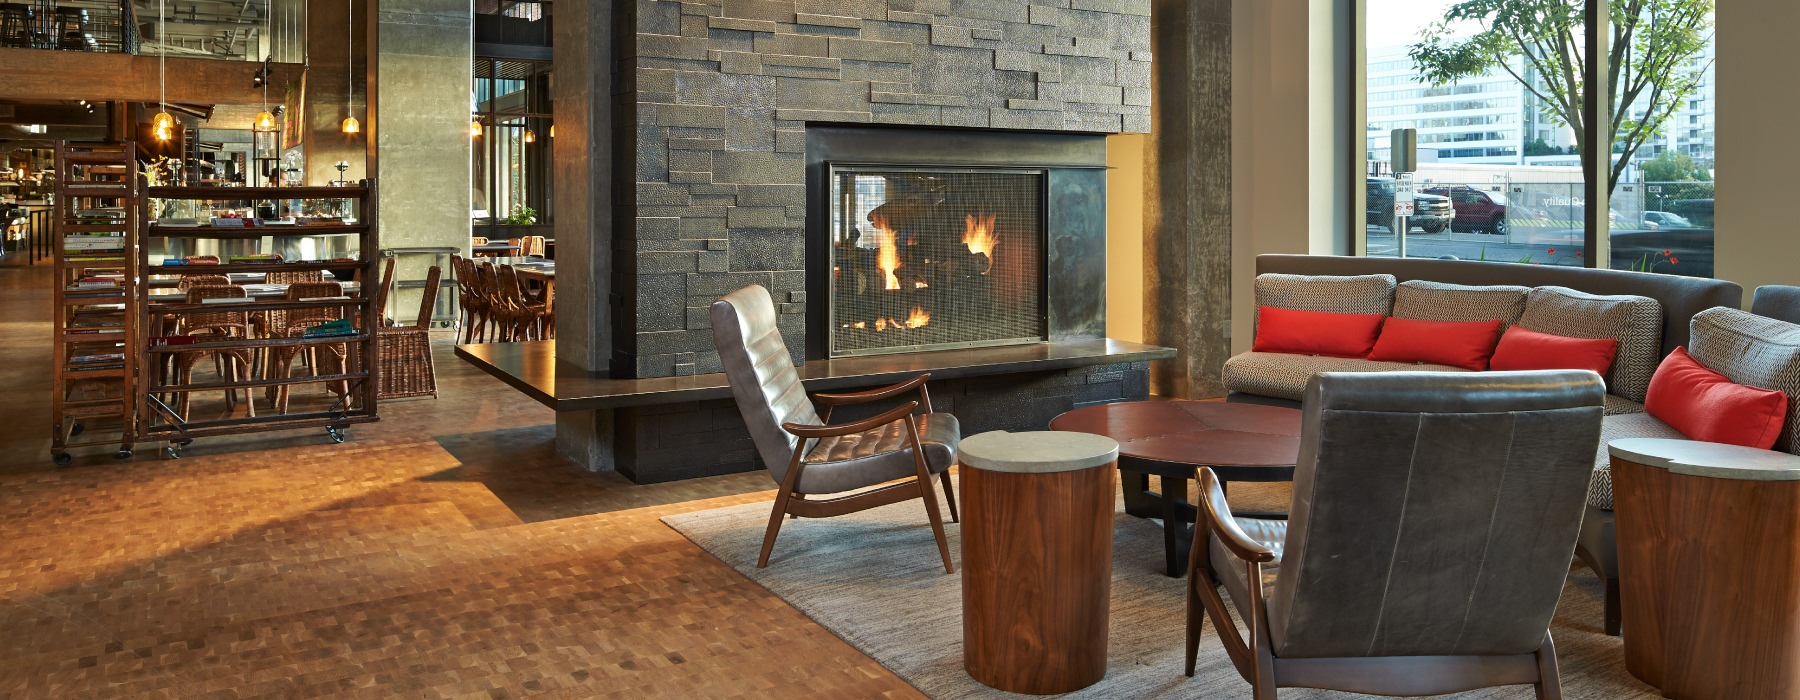 Lobby with plush seating and fireplace, large window for view passers by and plenty of natural lighting